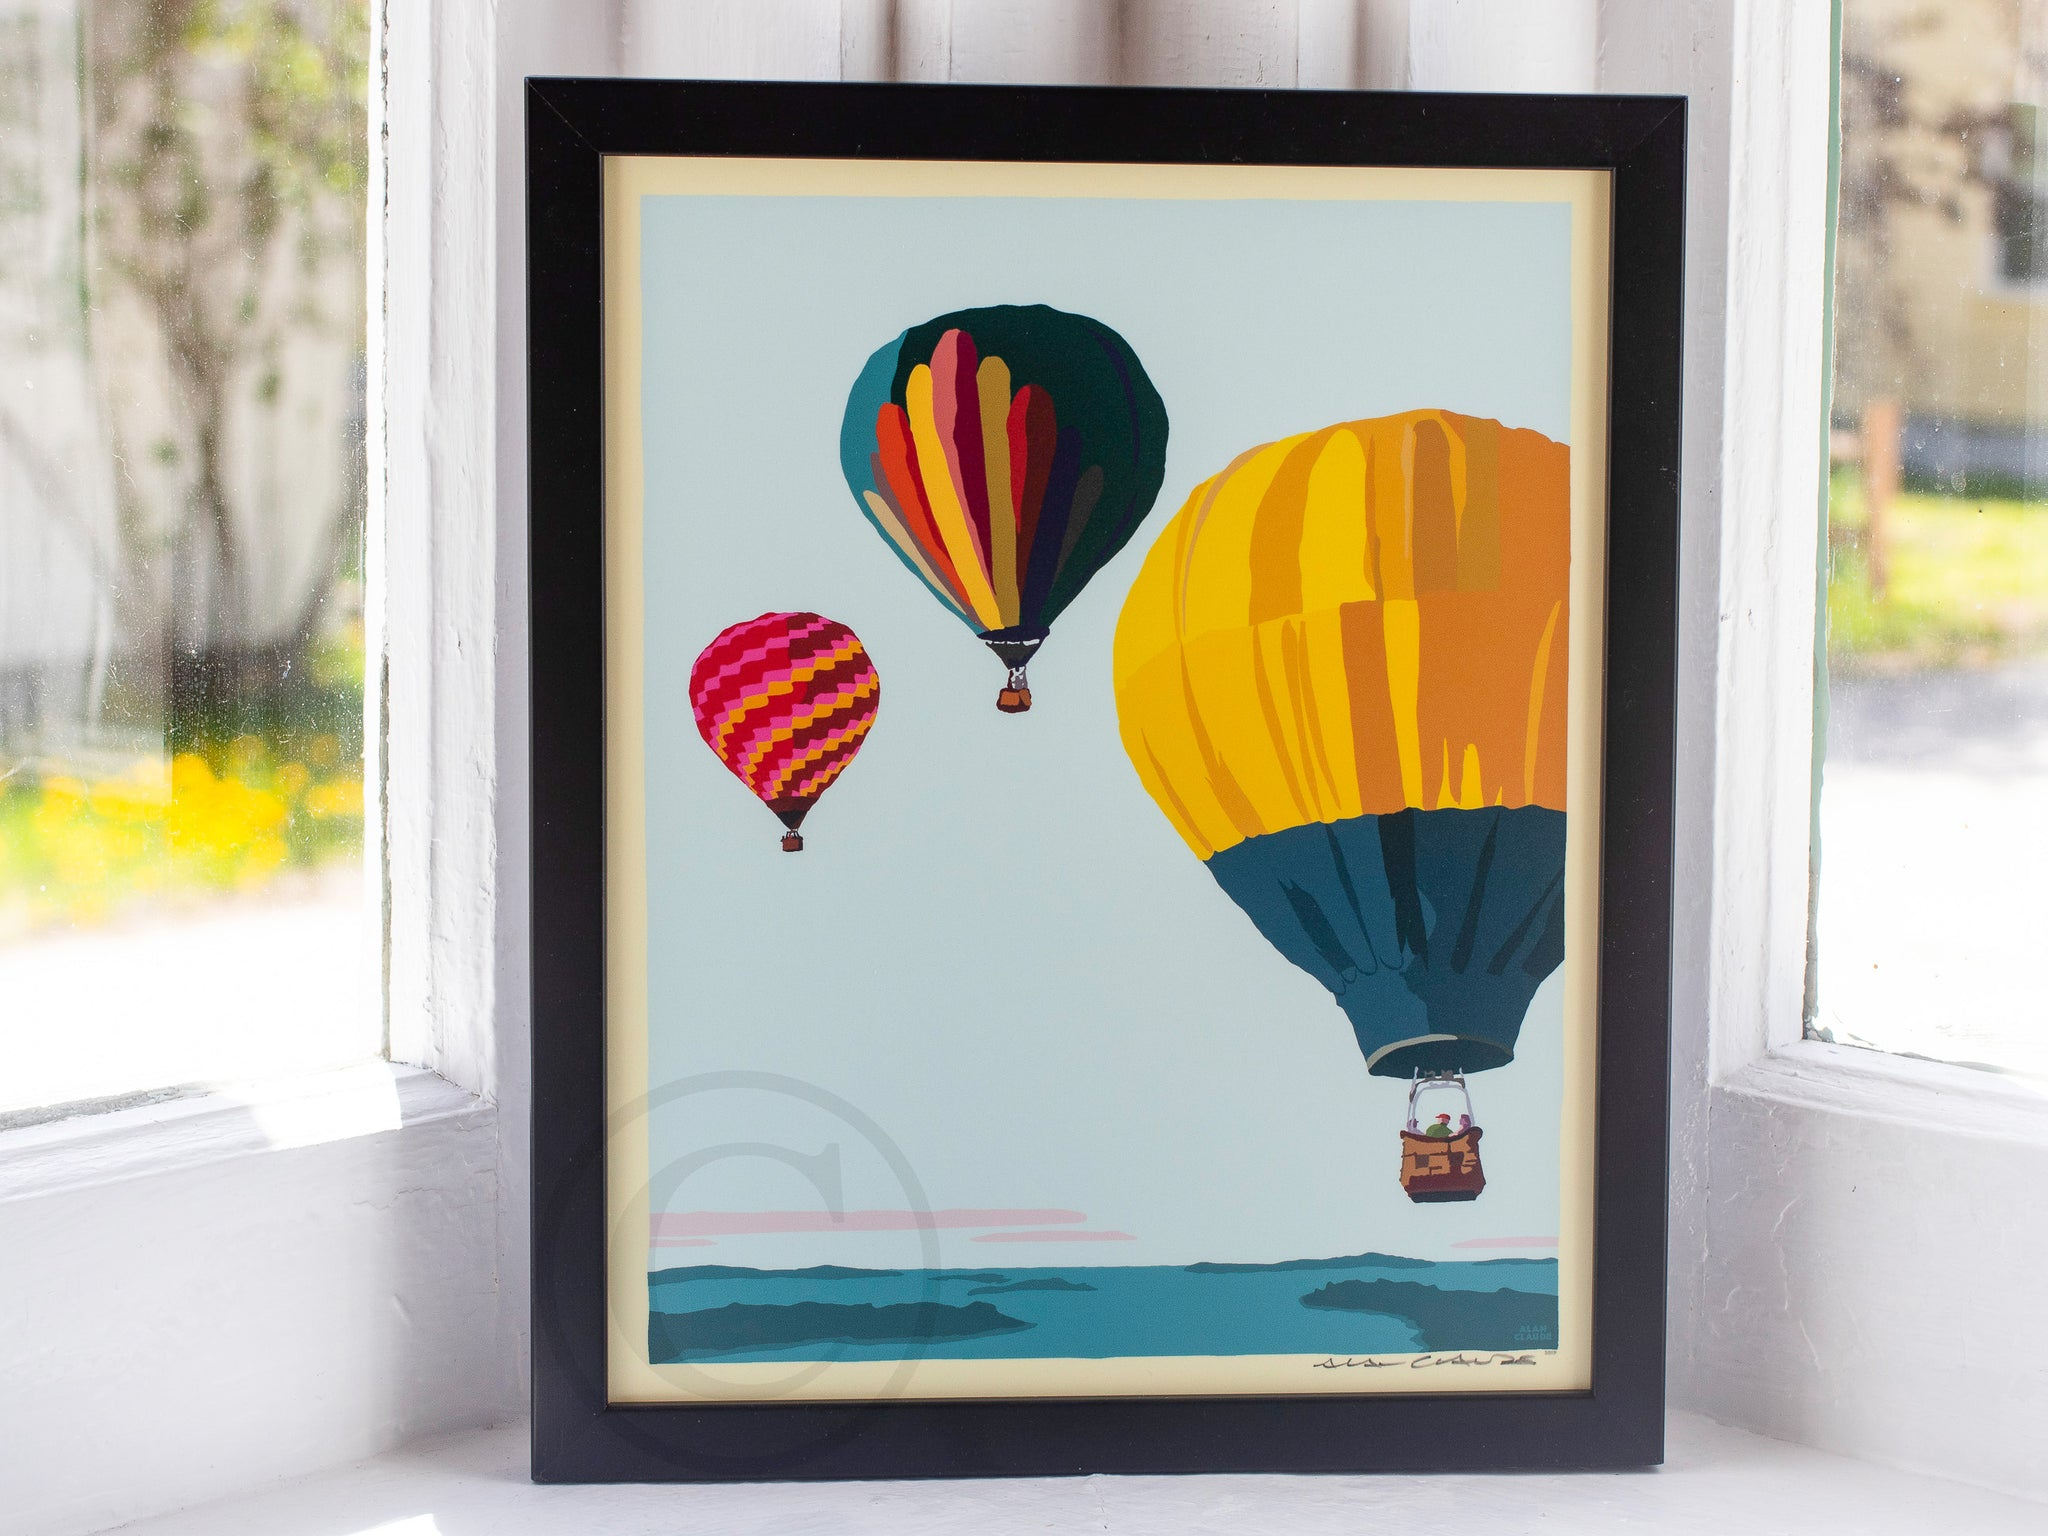 "Balloons Over Islands Art Print 8"" x 10"" Framed Wall Poster"